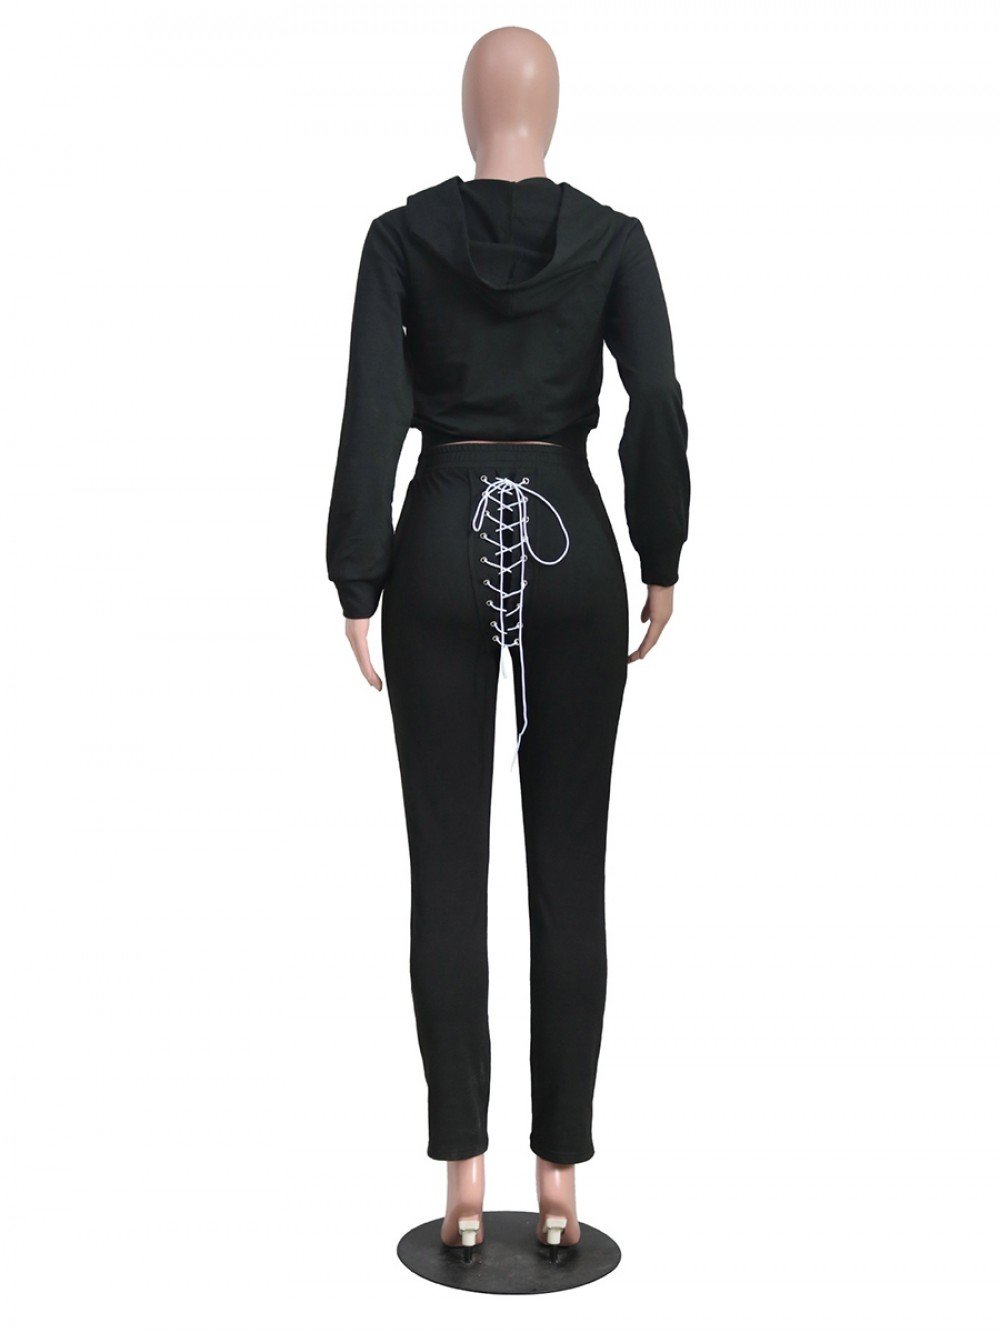 Black Hooded Collar Long Sleeve Women Suit New Fashion